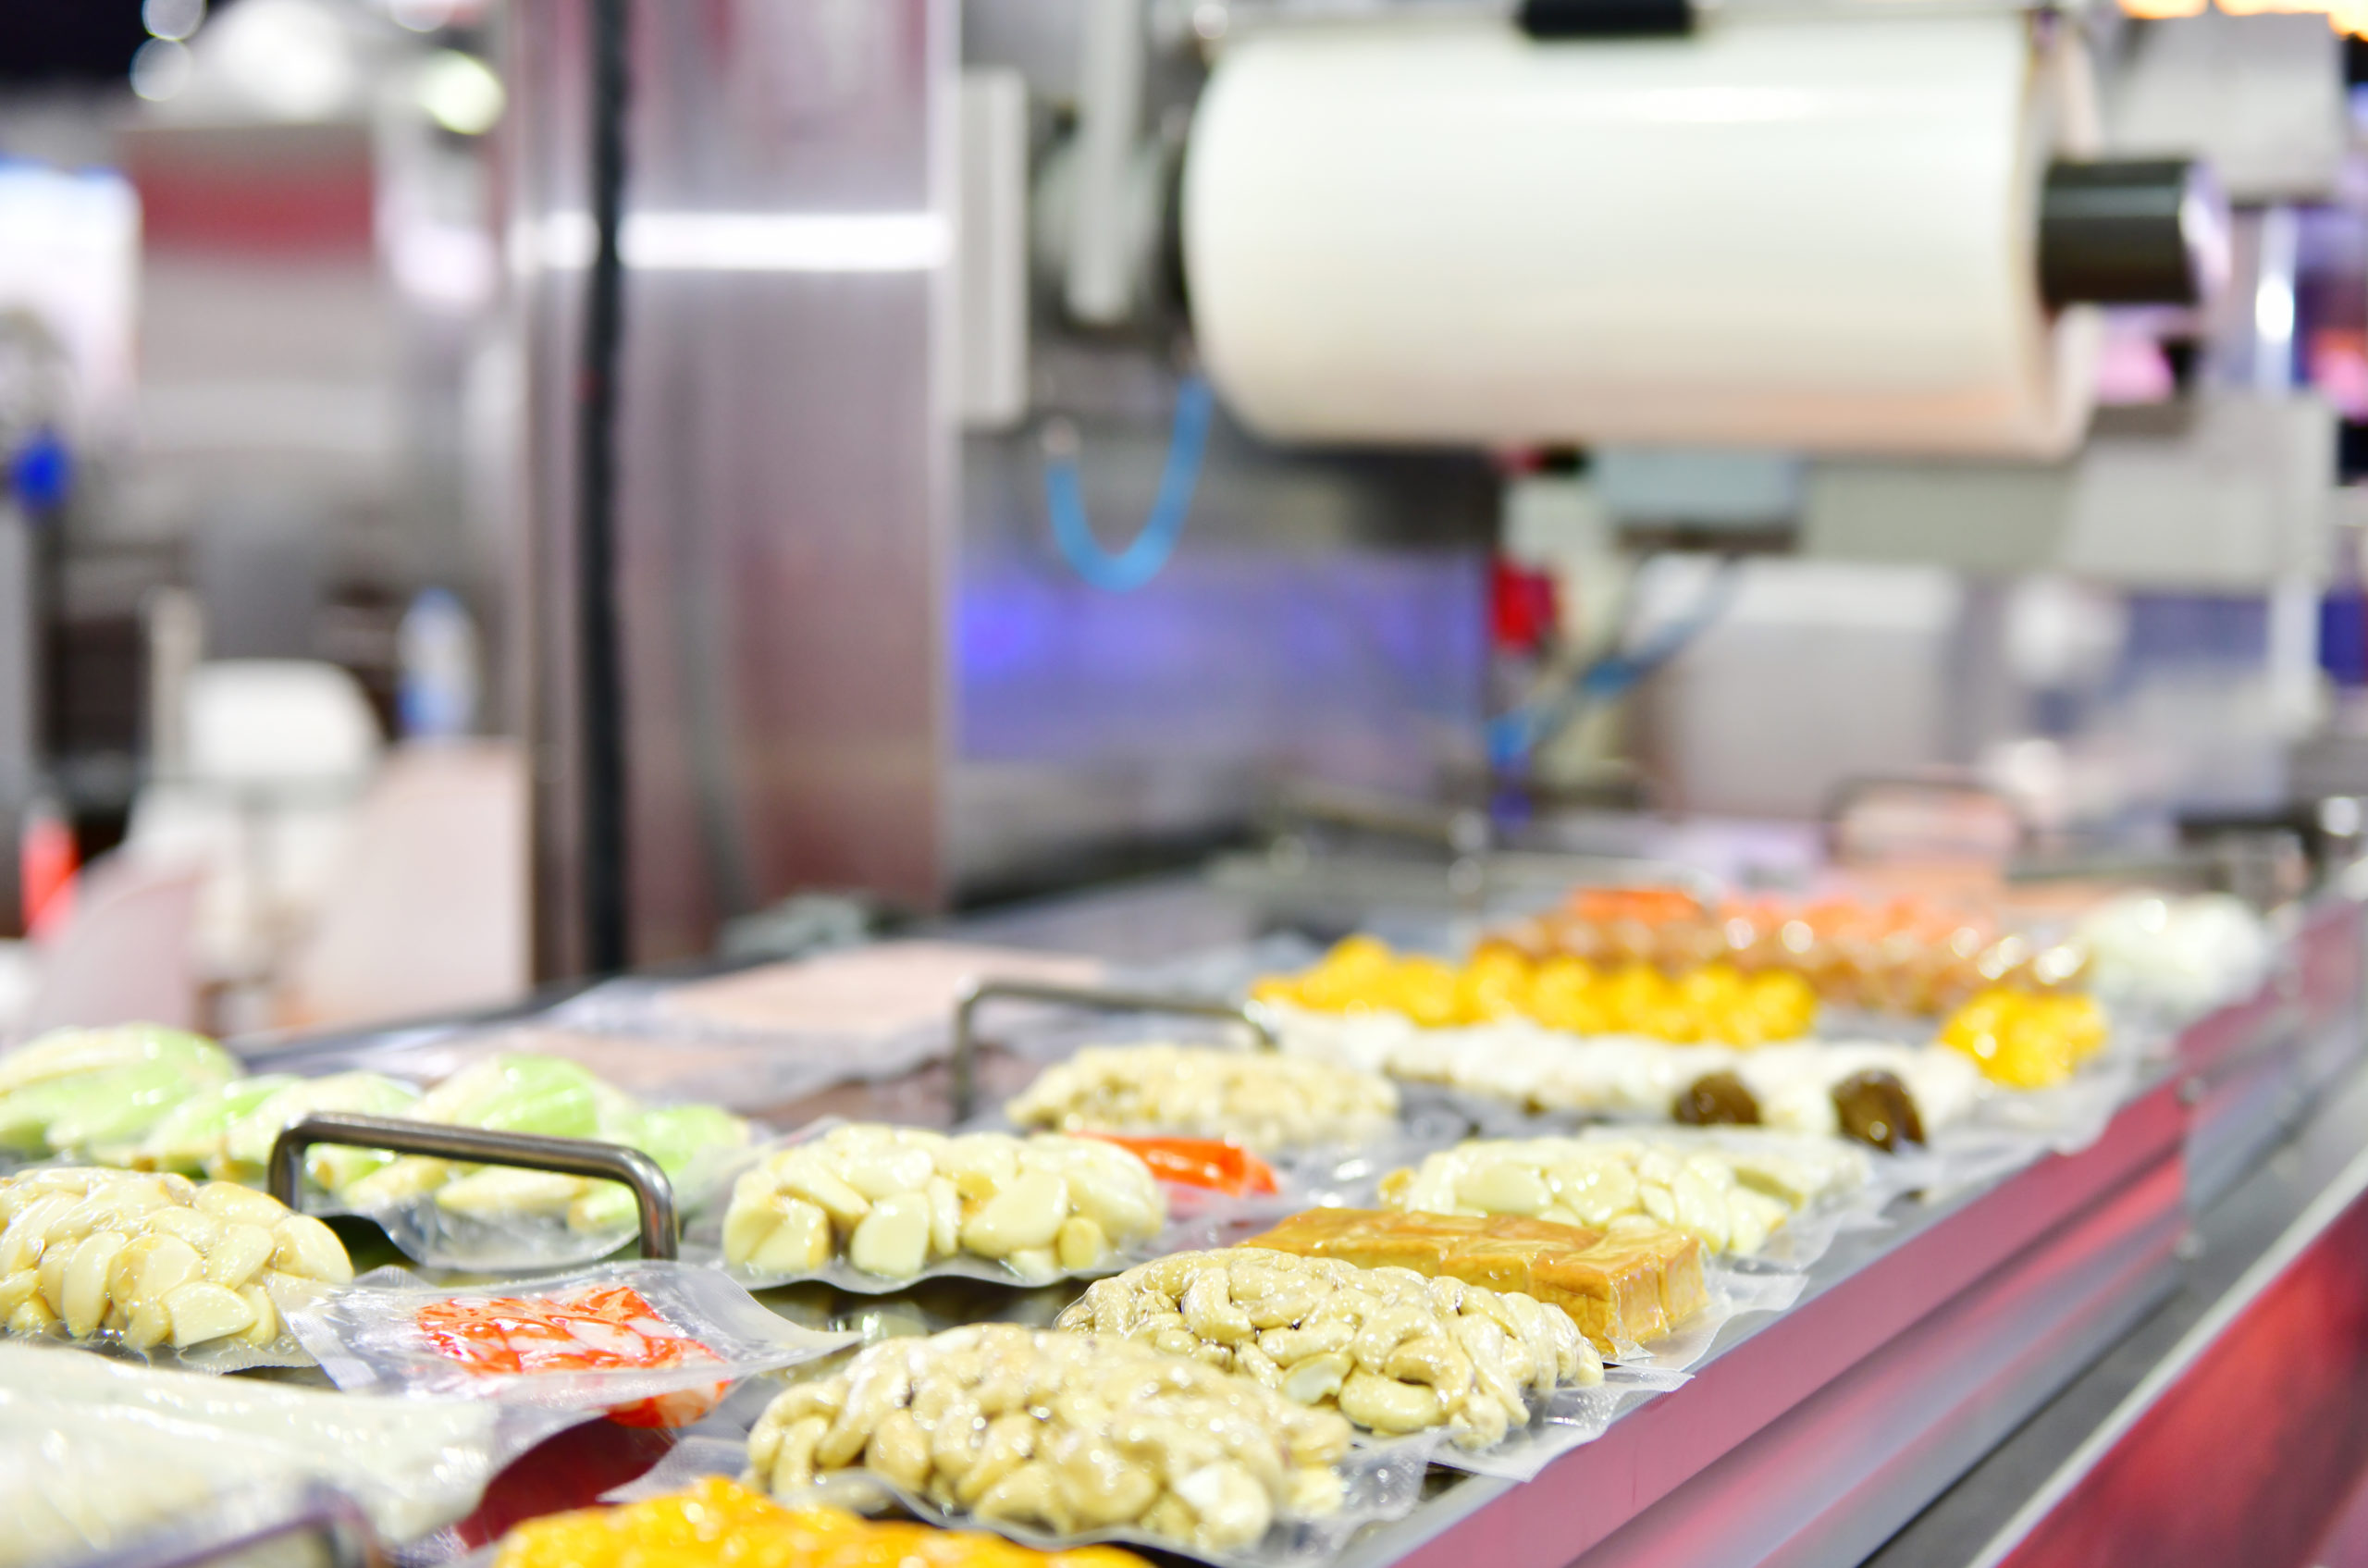 These Are the Three Food Safety Trends of 2020 That You Should Know